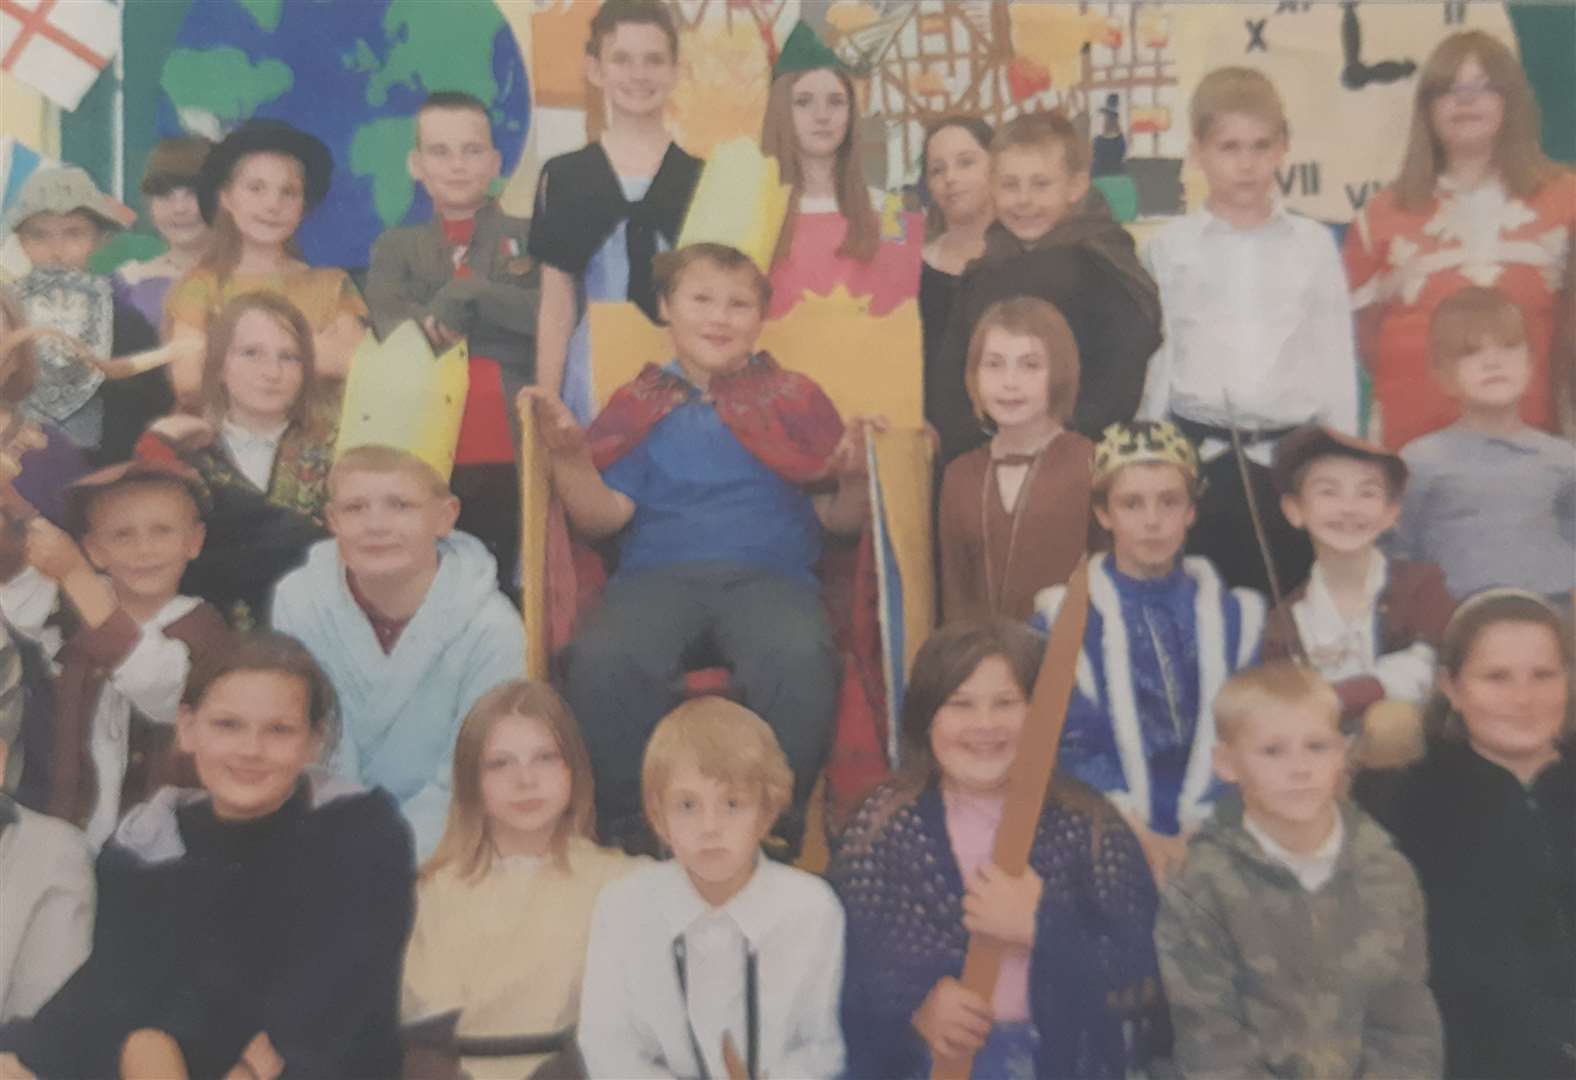 School's play ten years ago about 1,000 years of history